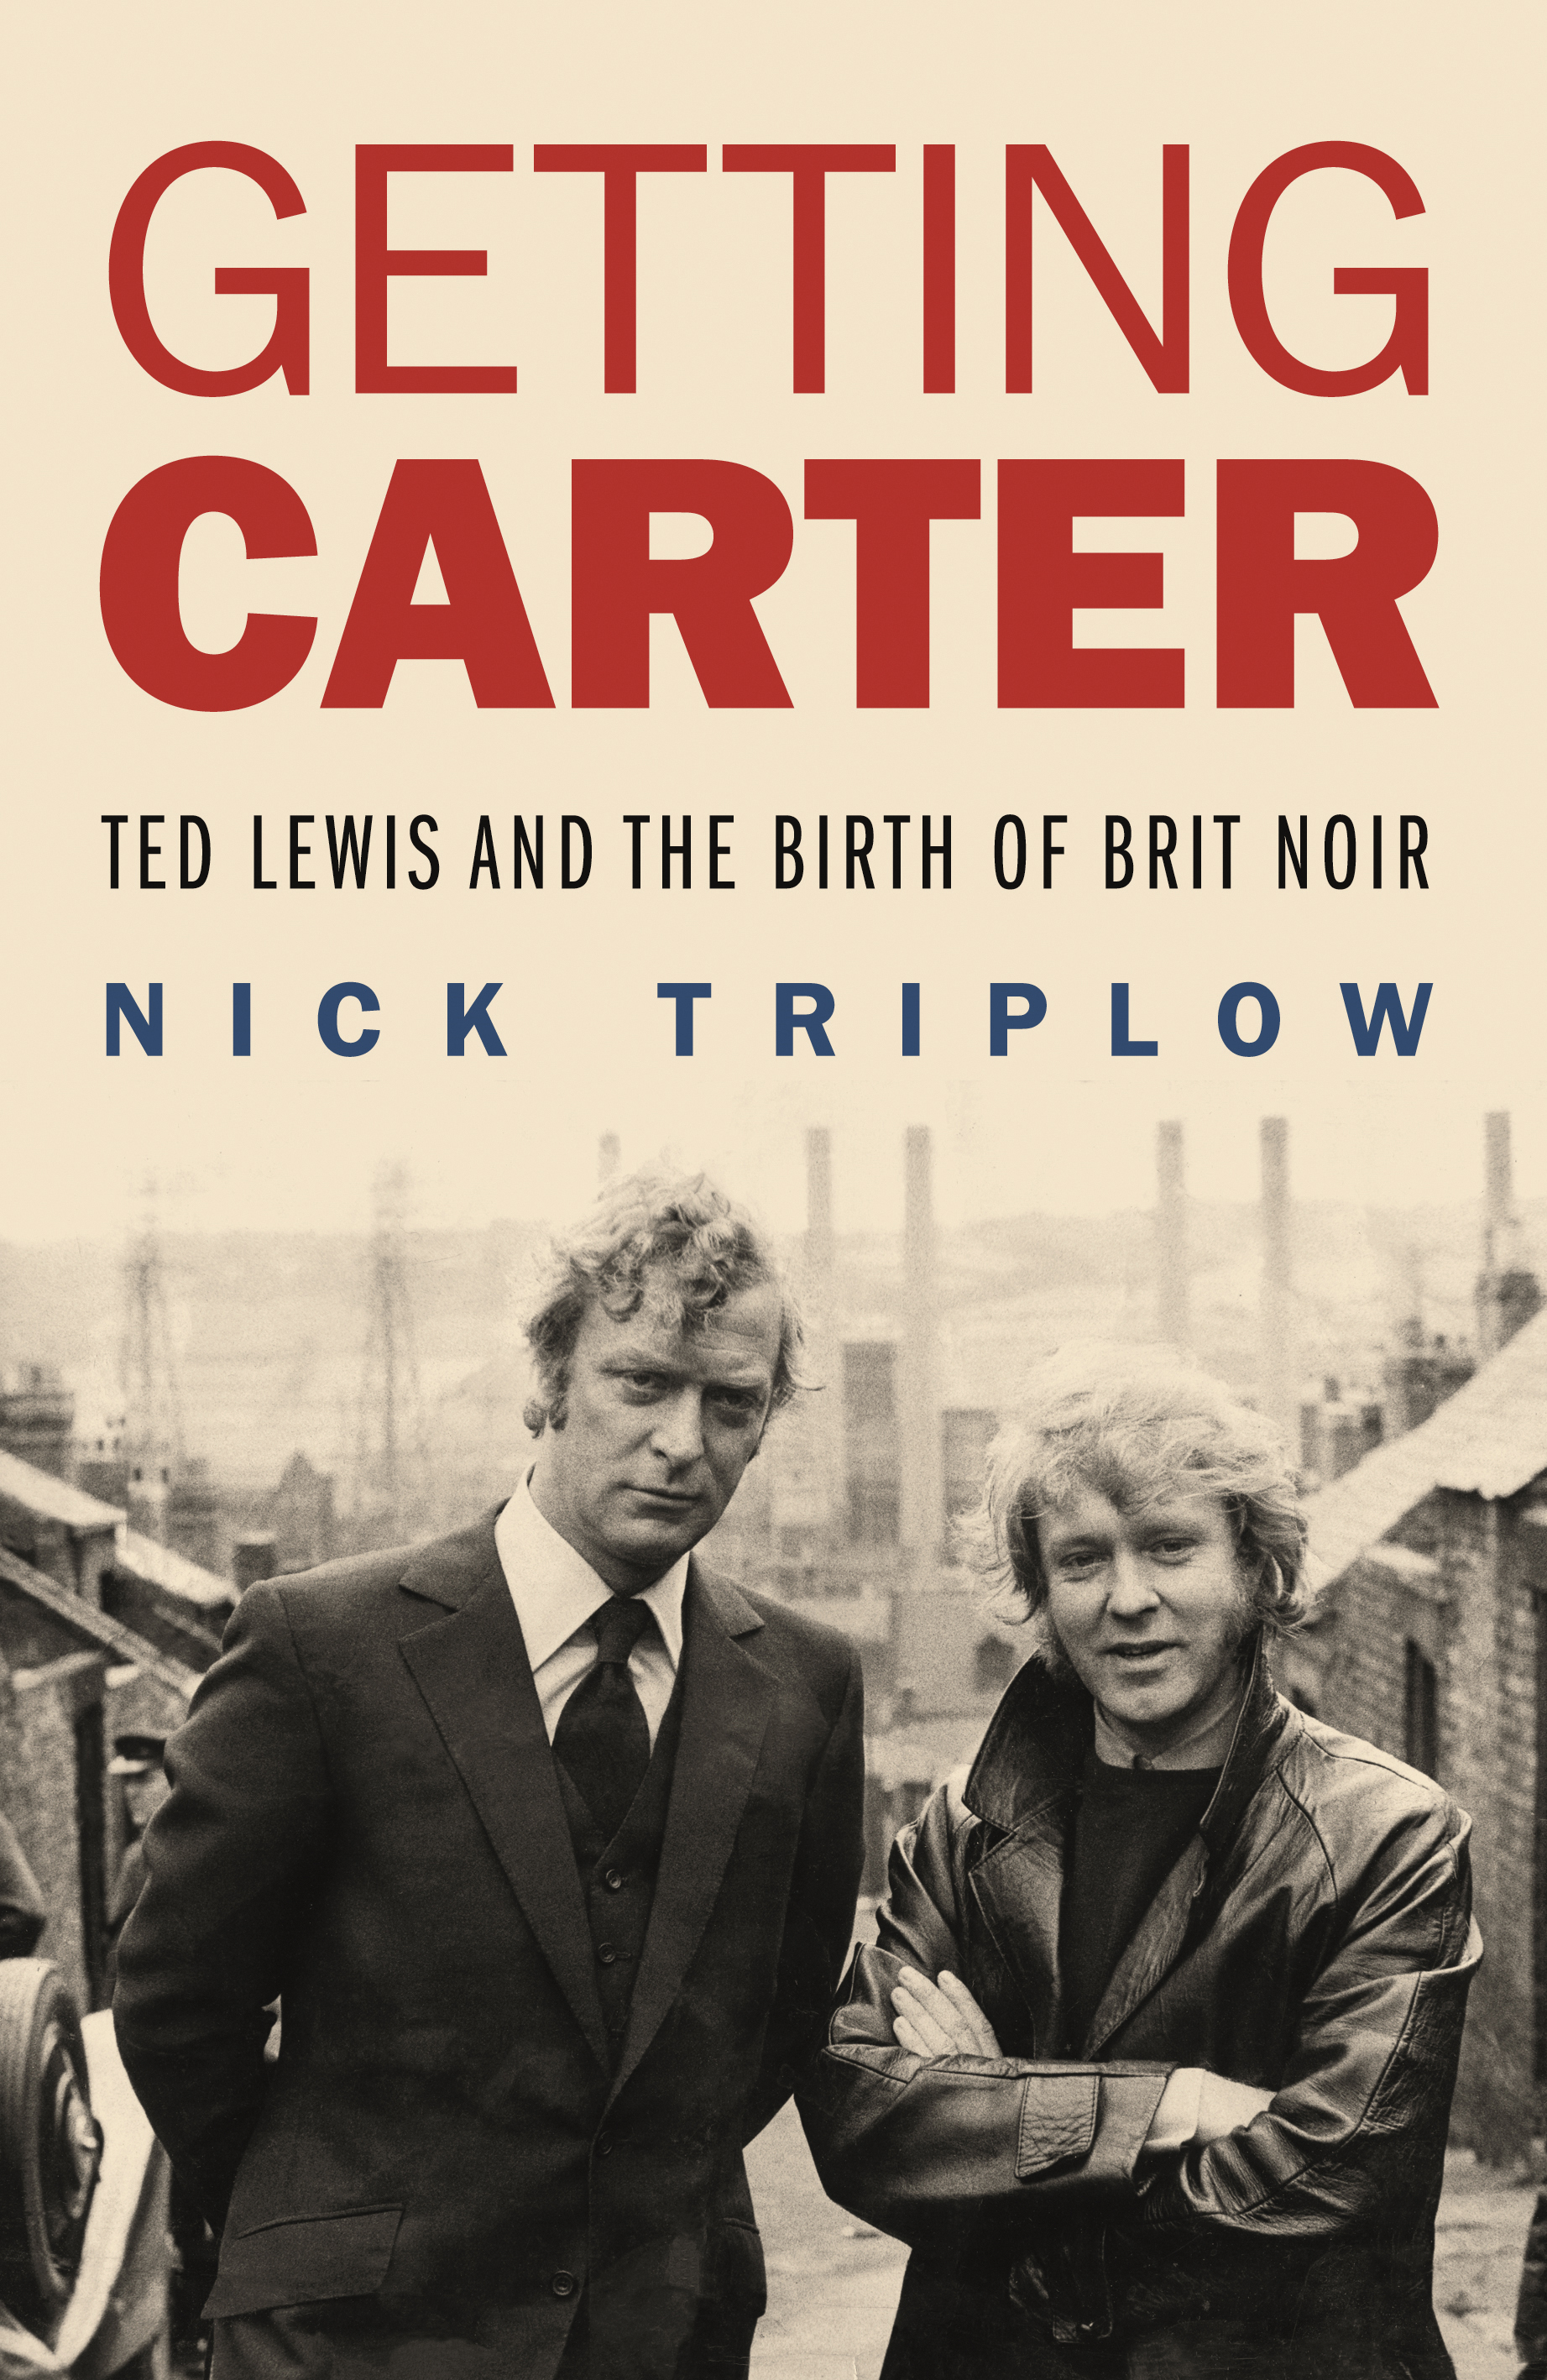 03131e476312 Getting Carter - Ted Lewis and the Birth of Brit Noir